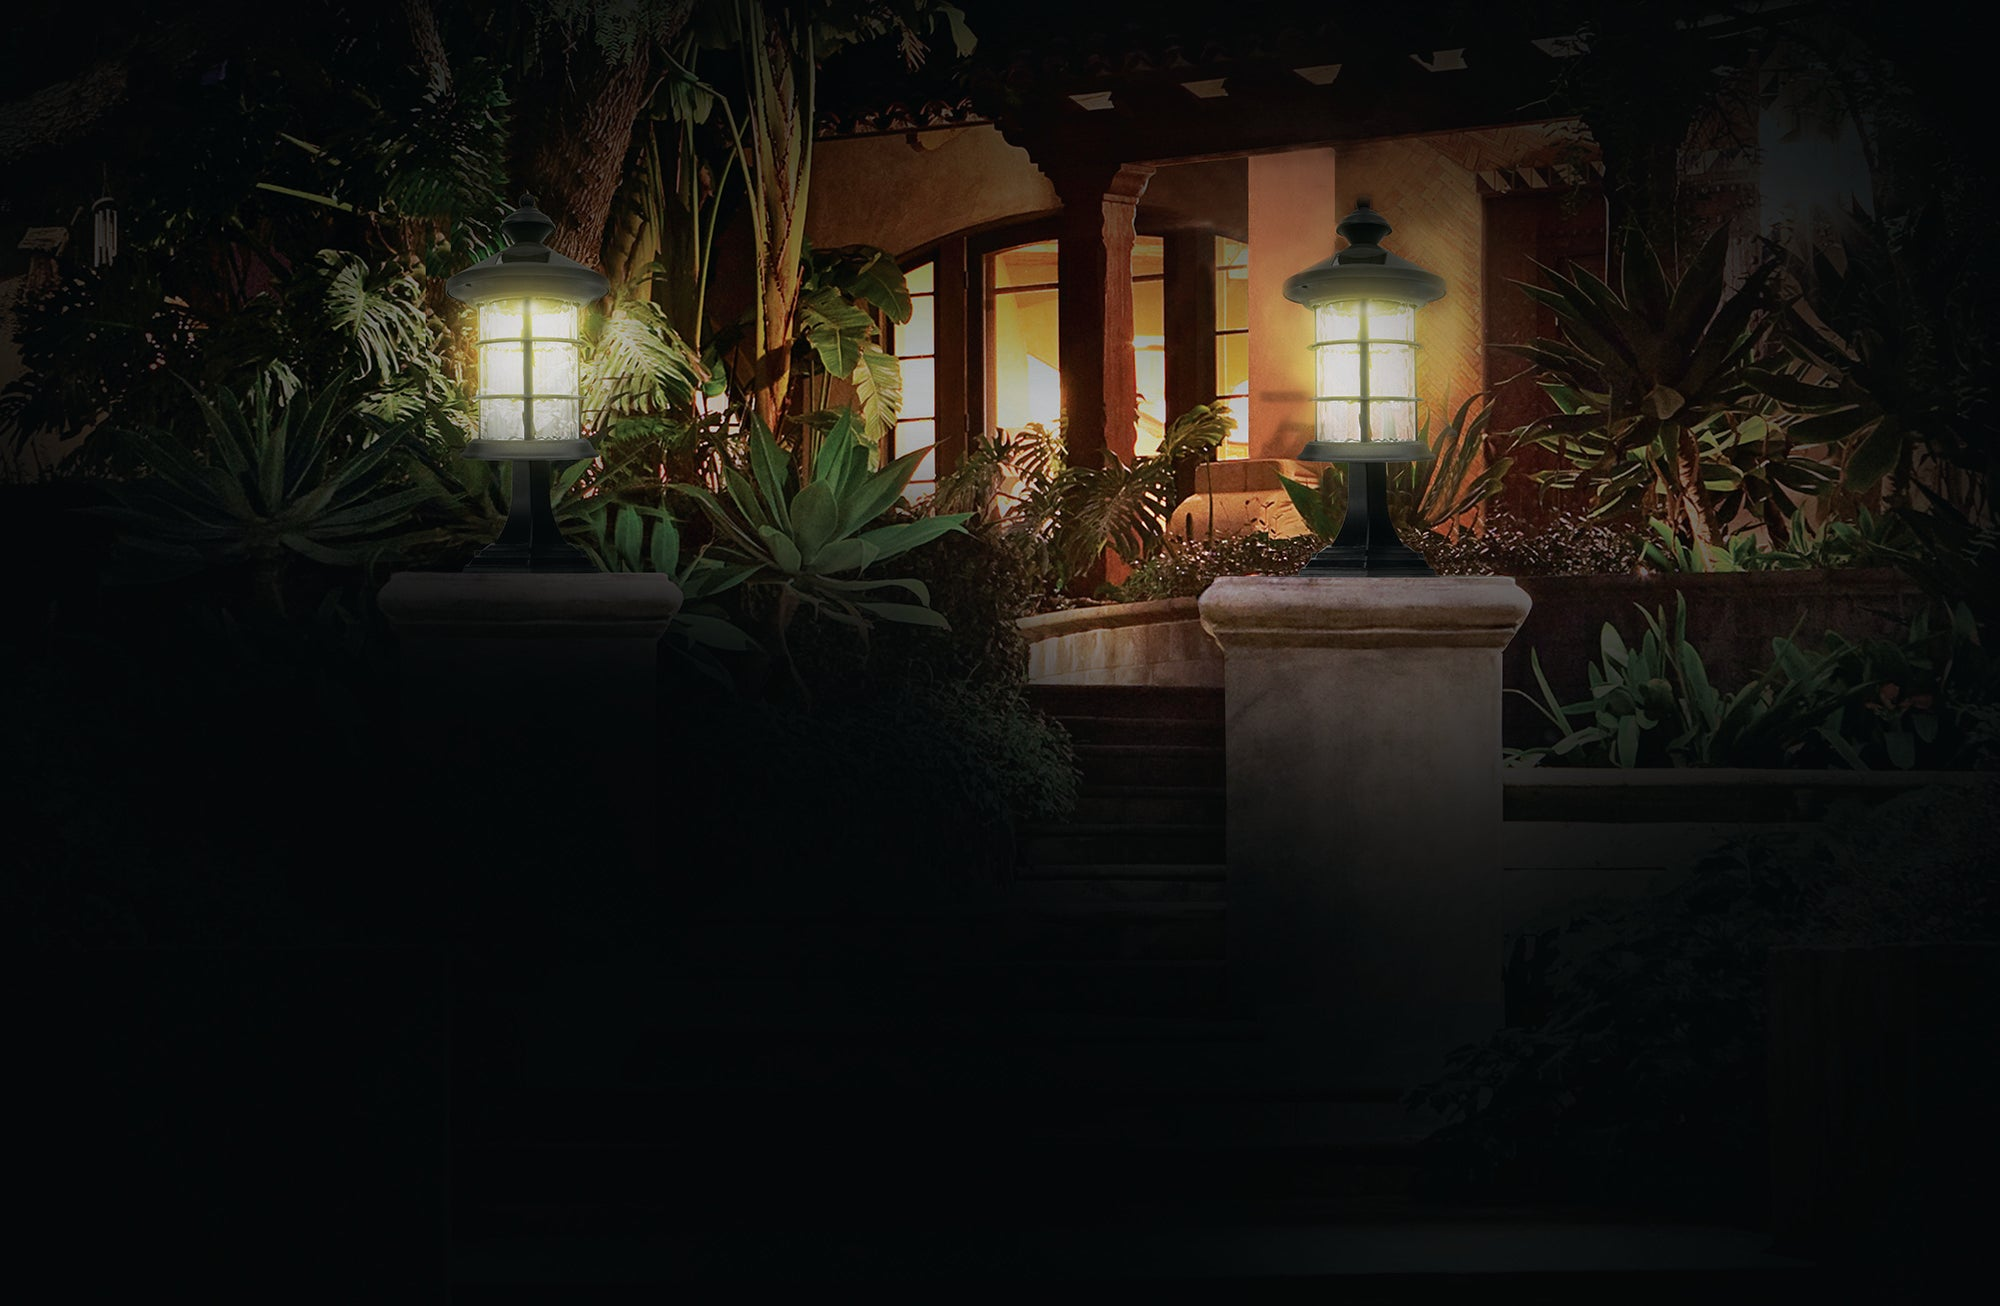 BLACK ALUMINUM HAMPTON SOLAR LAMP